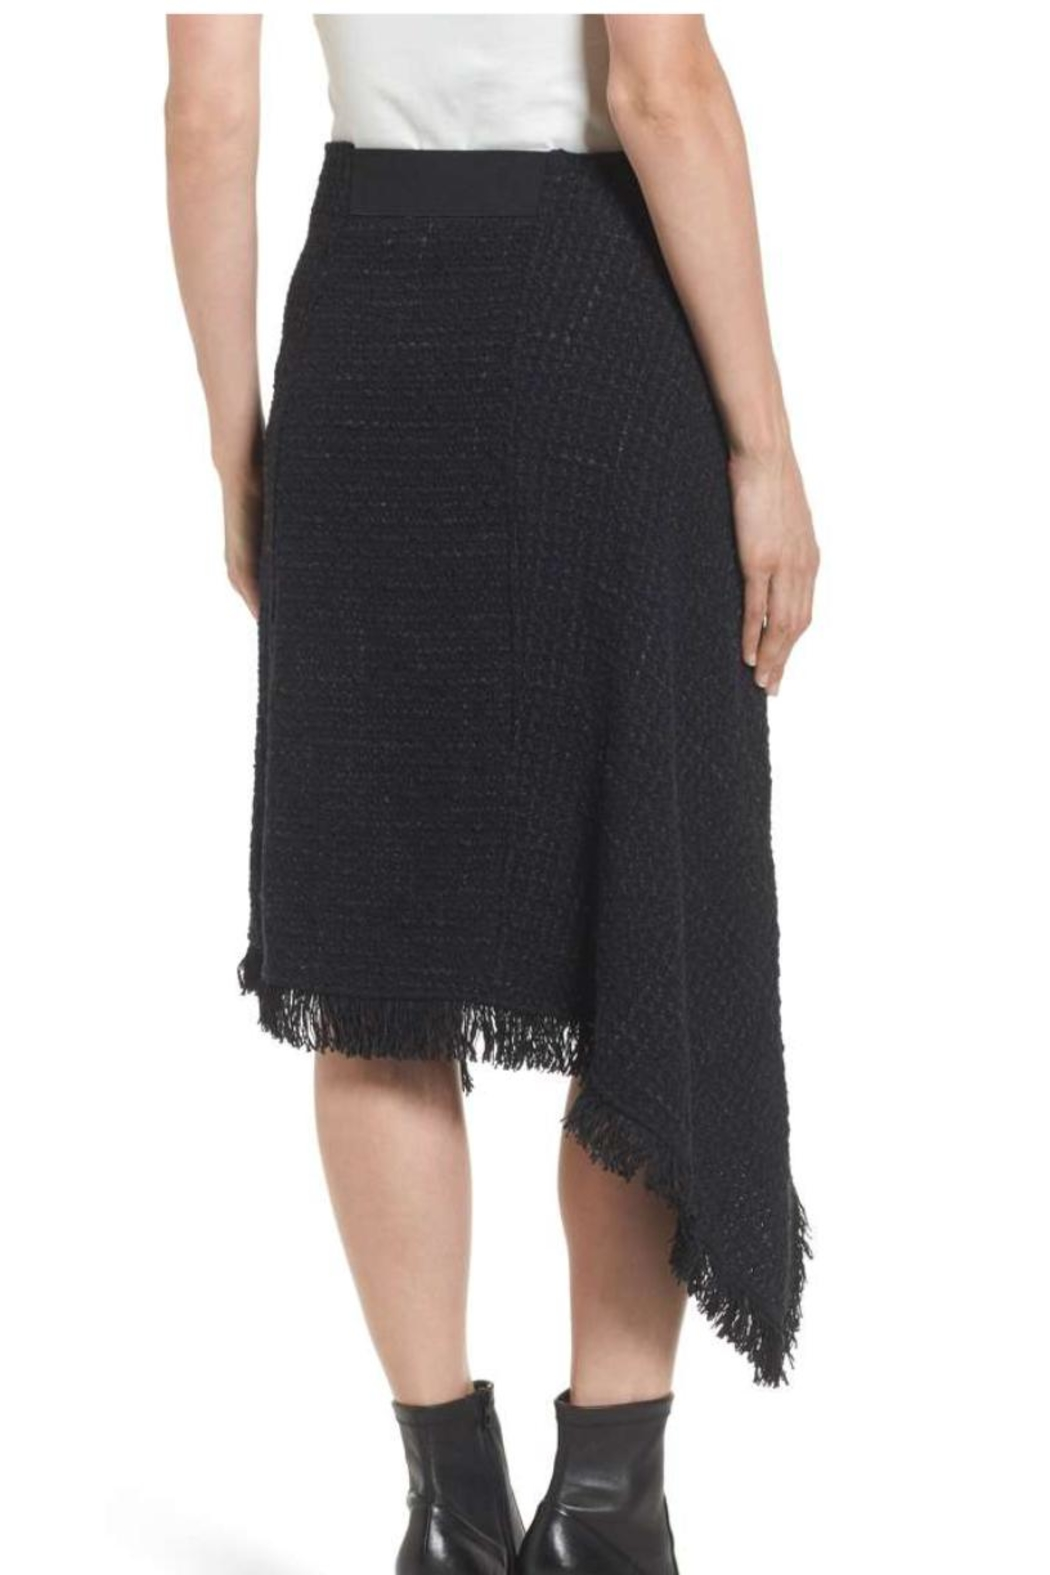 Nic + Zoe Majestic Tweed Skirt - Front Full Image